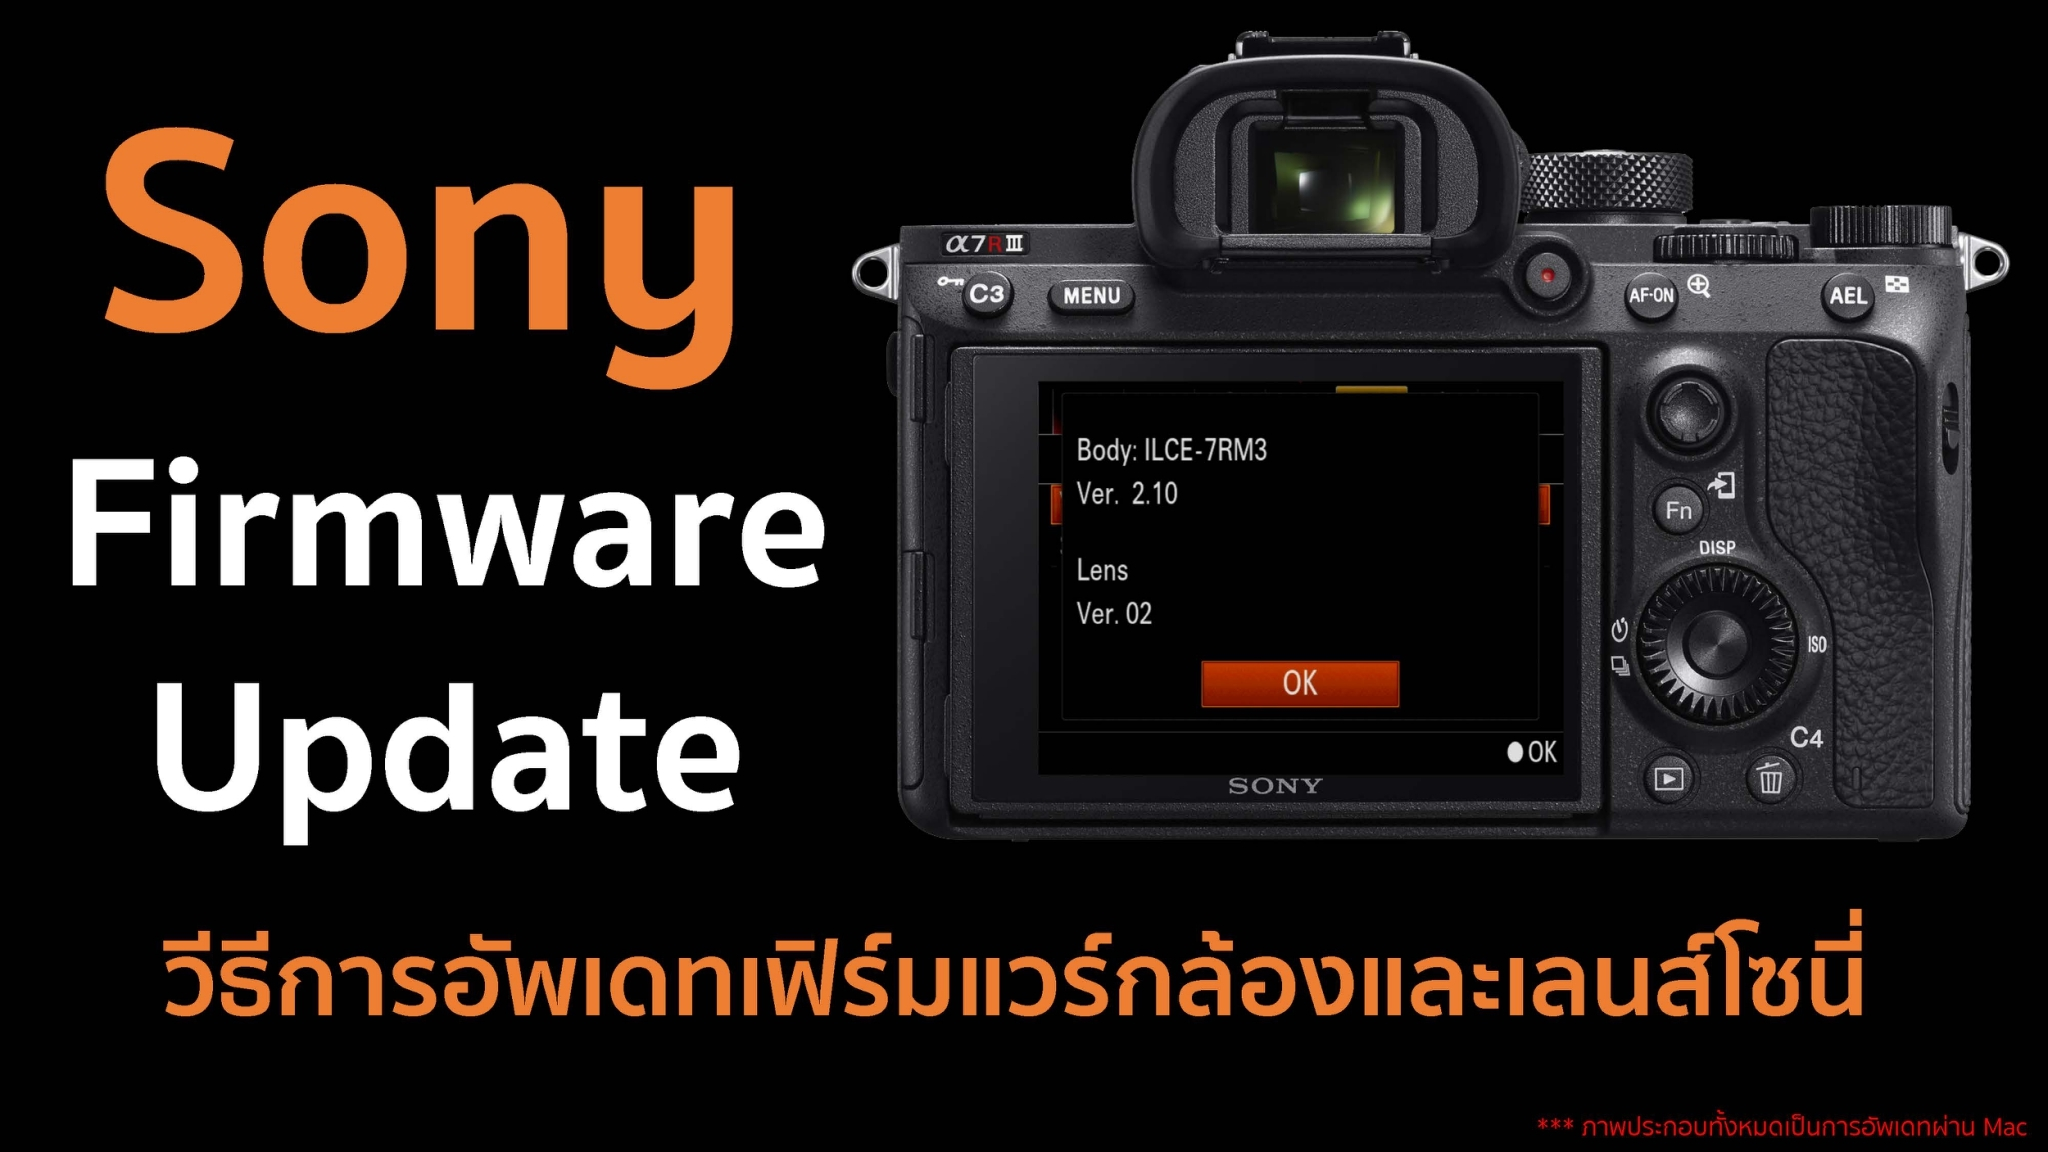 download update firmware for sony a7iii